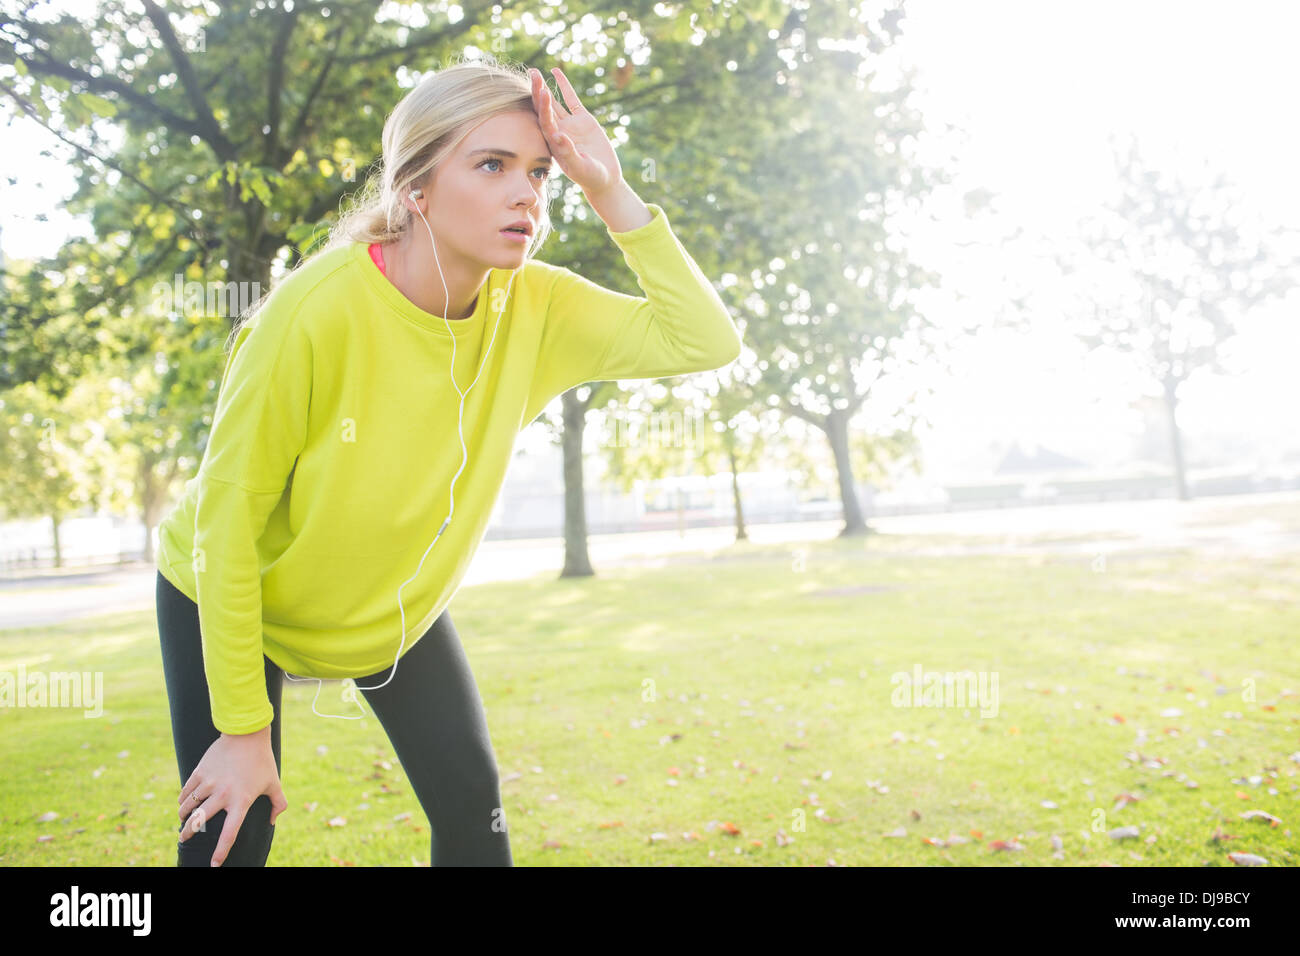 Active exhausted blonde pausing after running - Stock Image